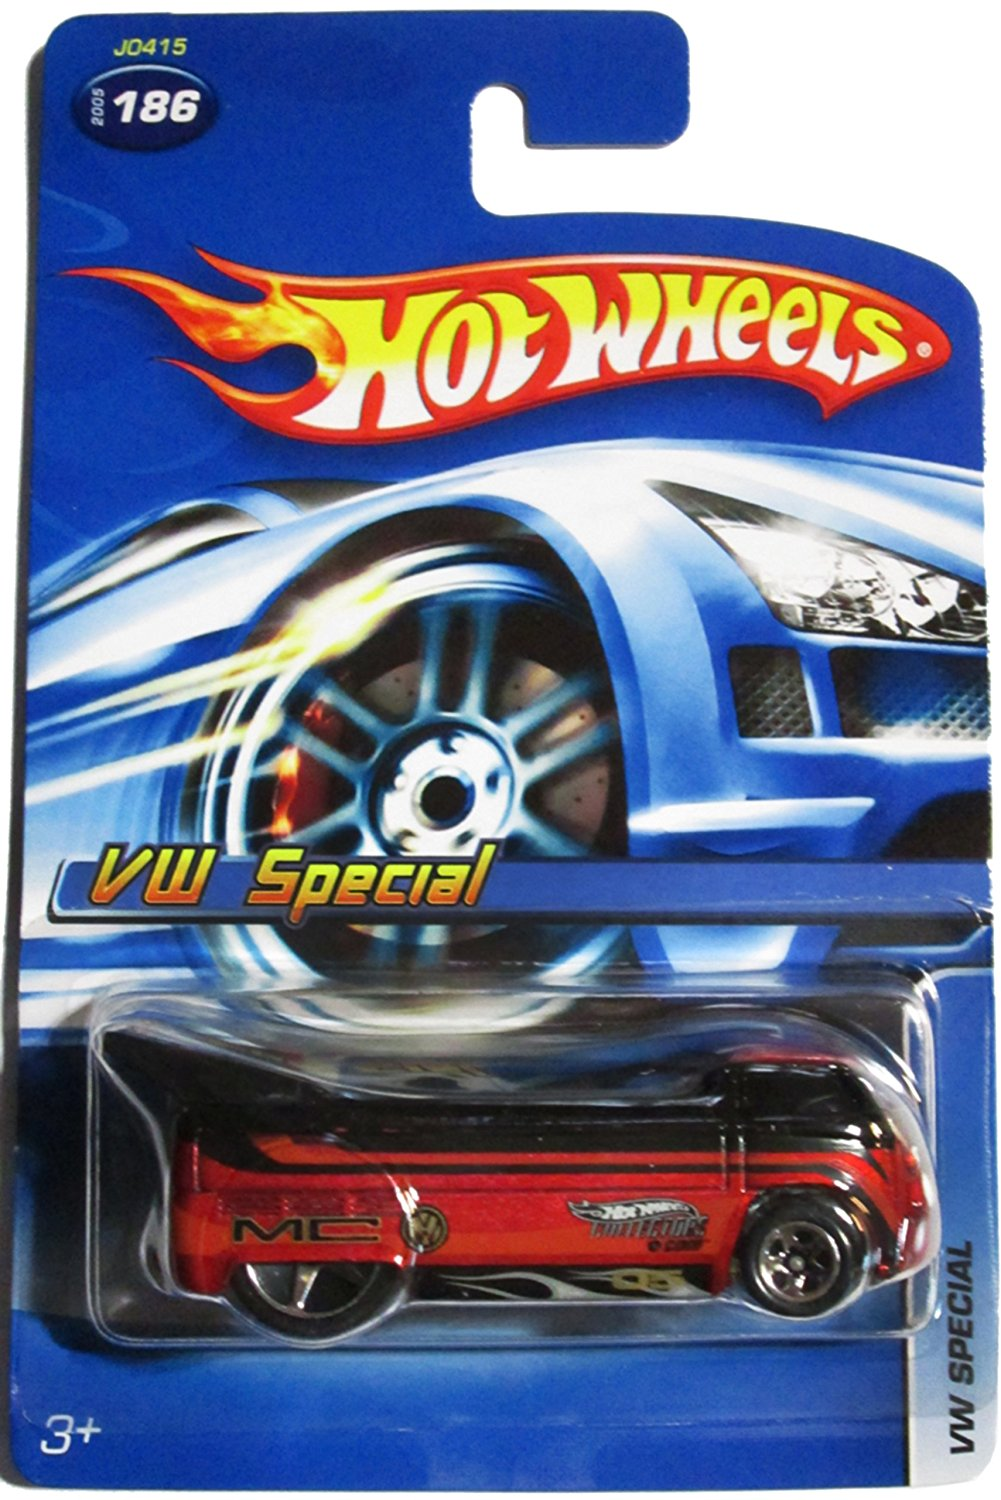 Exclusive Vw Special Drag Truck Black on Red 5 spoke highly detailed collector no UPC... by